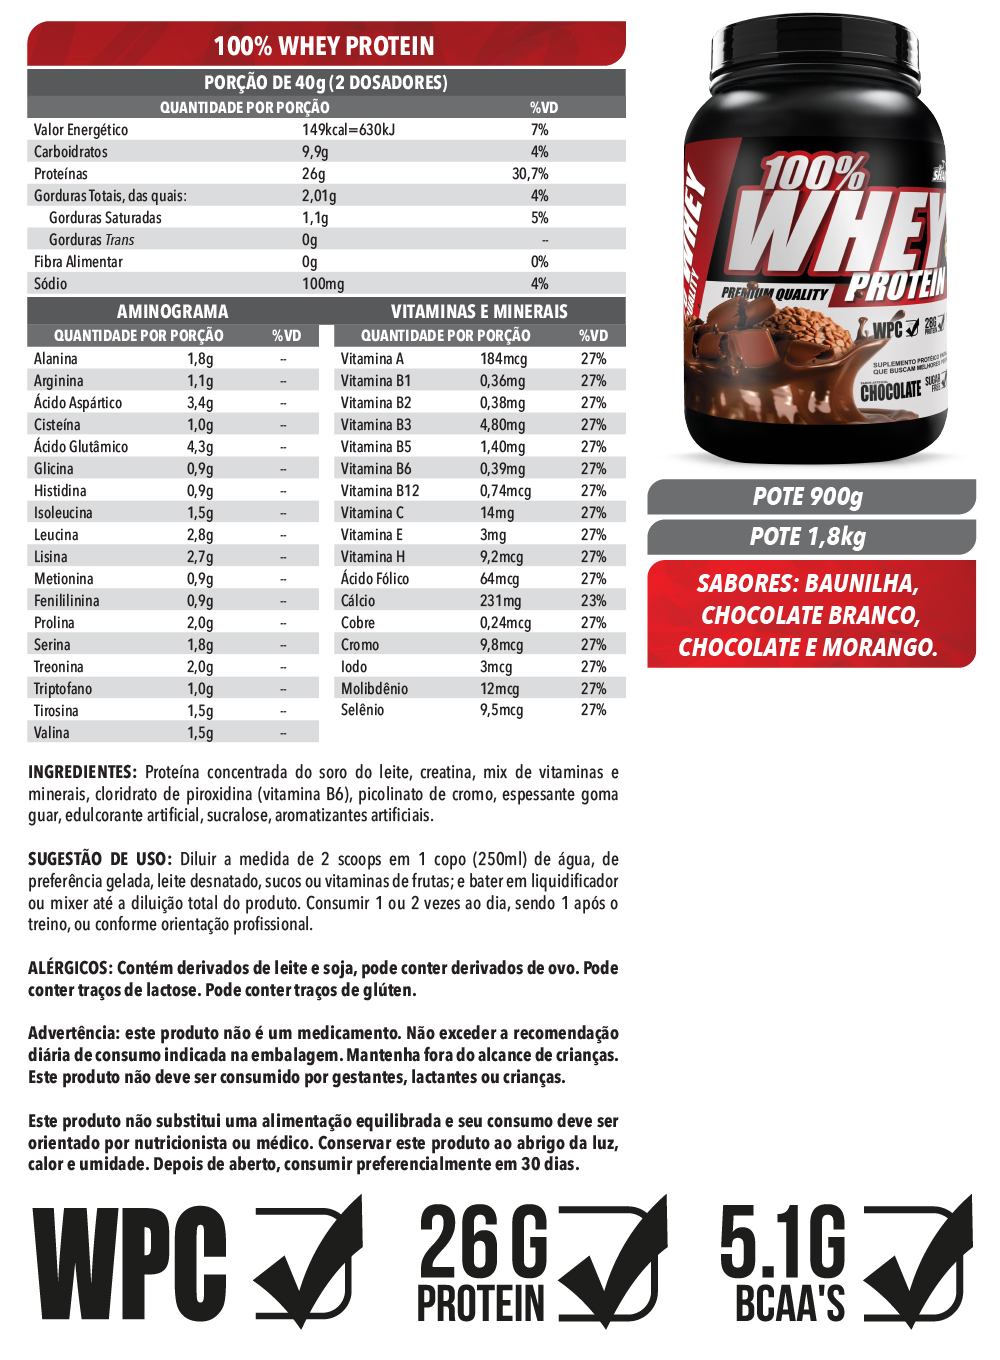 100% Whey Protein  1,8Kg - Chocolate Branco